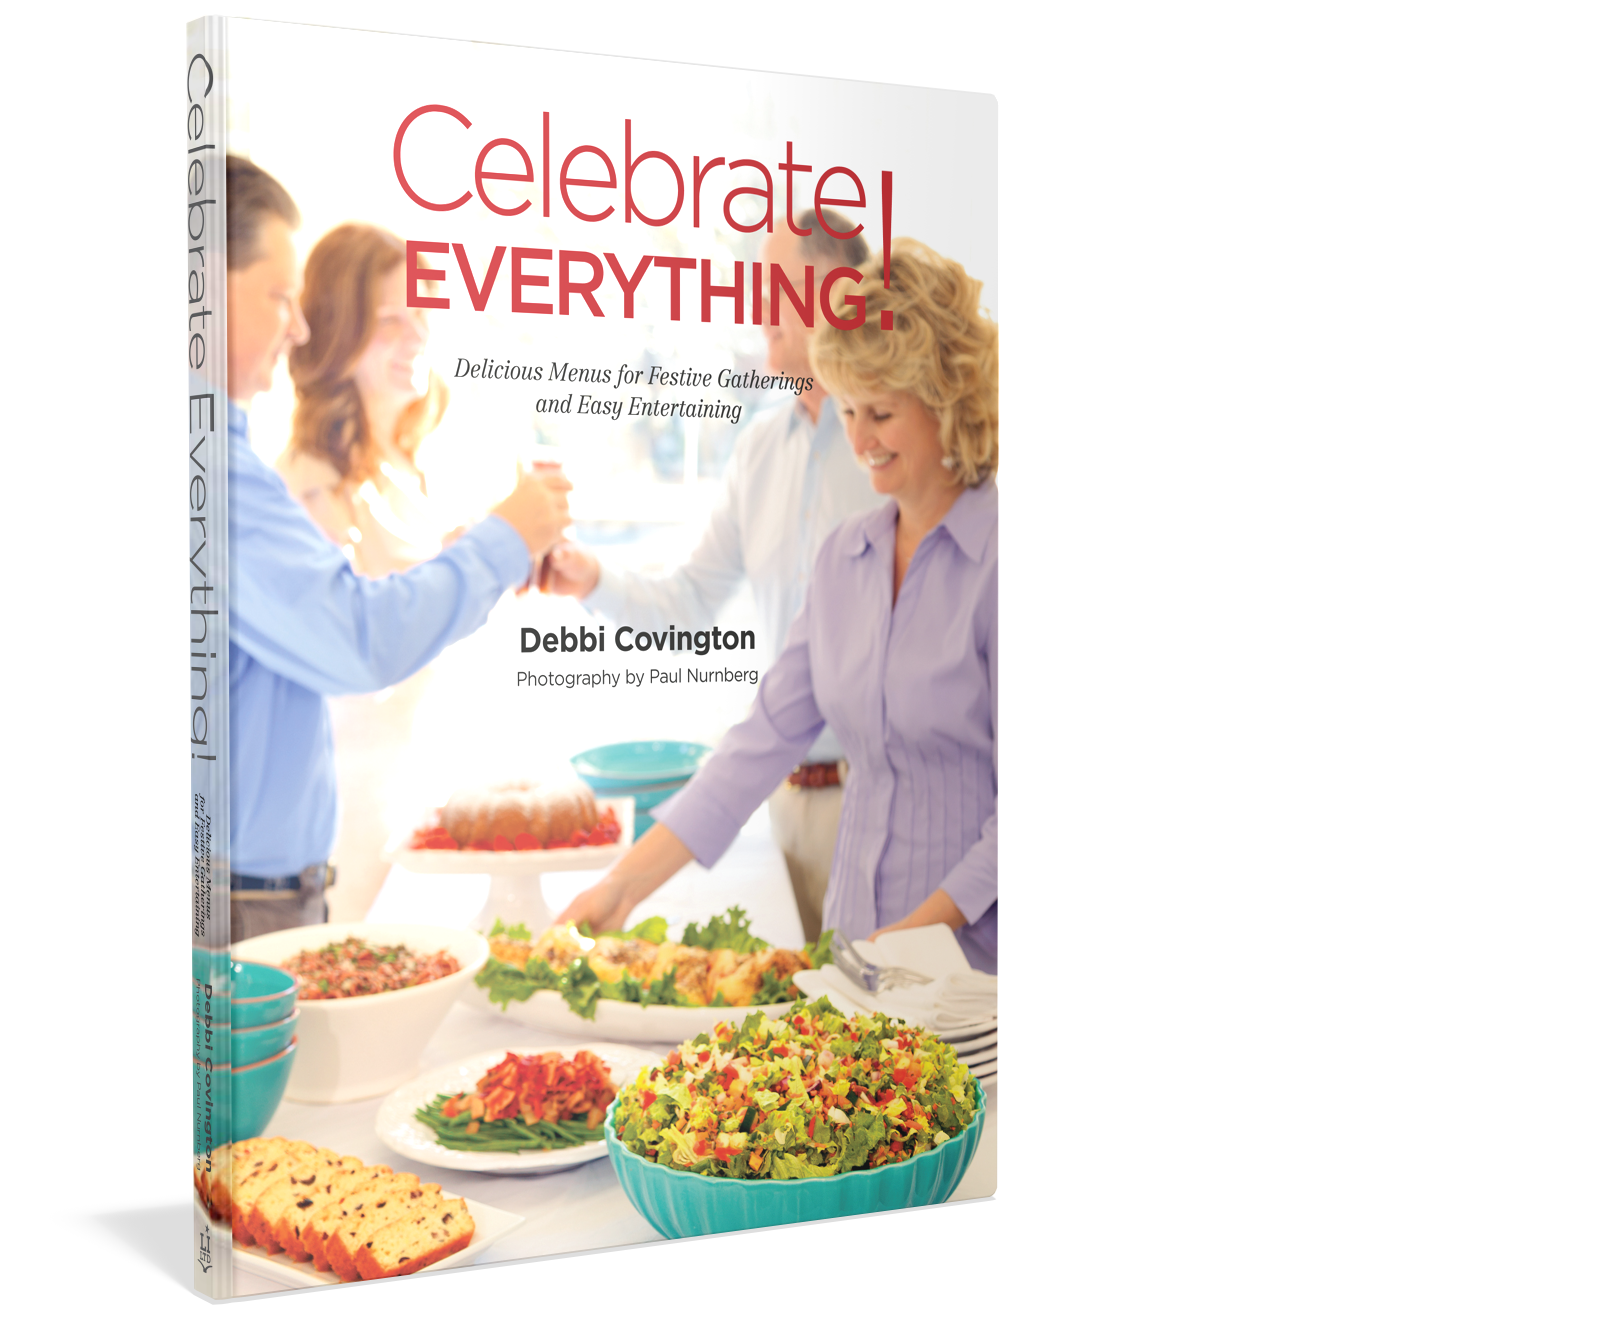 Award winning cookbook Celebrate Everything Author Debbie Covington of Beaufort Recipes and menus Starbooks